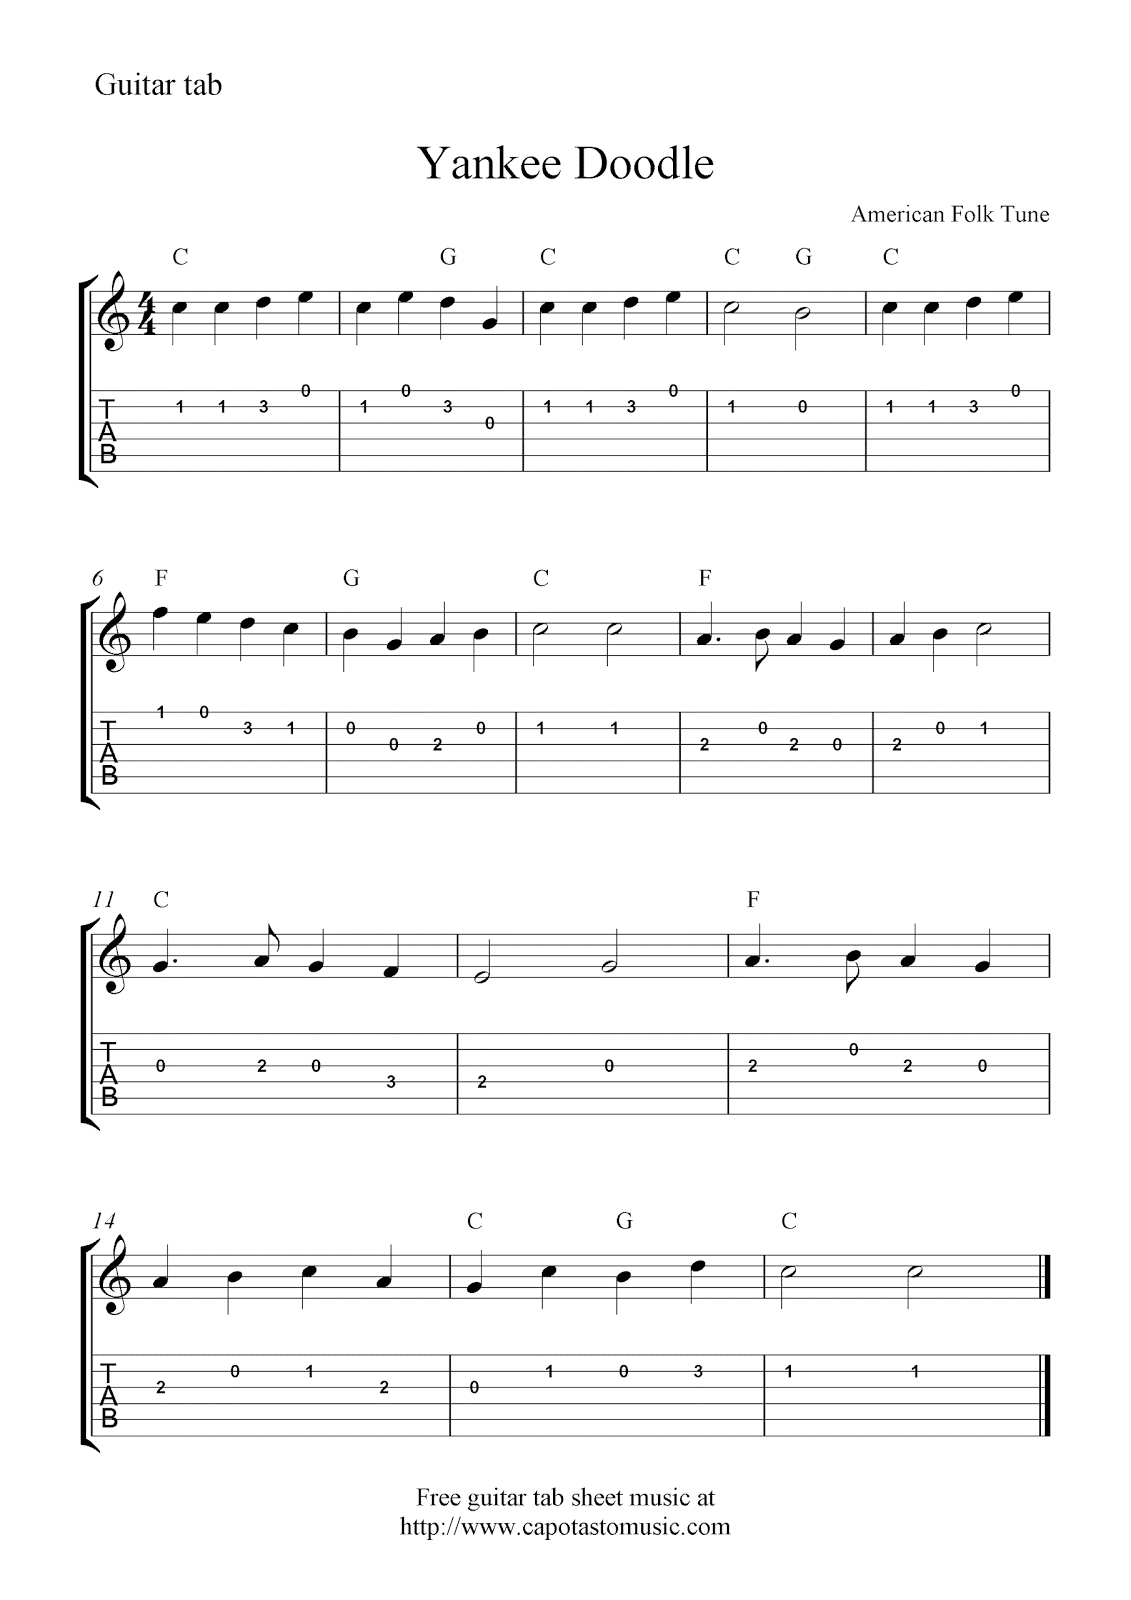 Yankee Doodle,easy Free Guitar Tab Sheet Music Score - Free Printable Guitar Tabs For Beginners